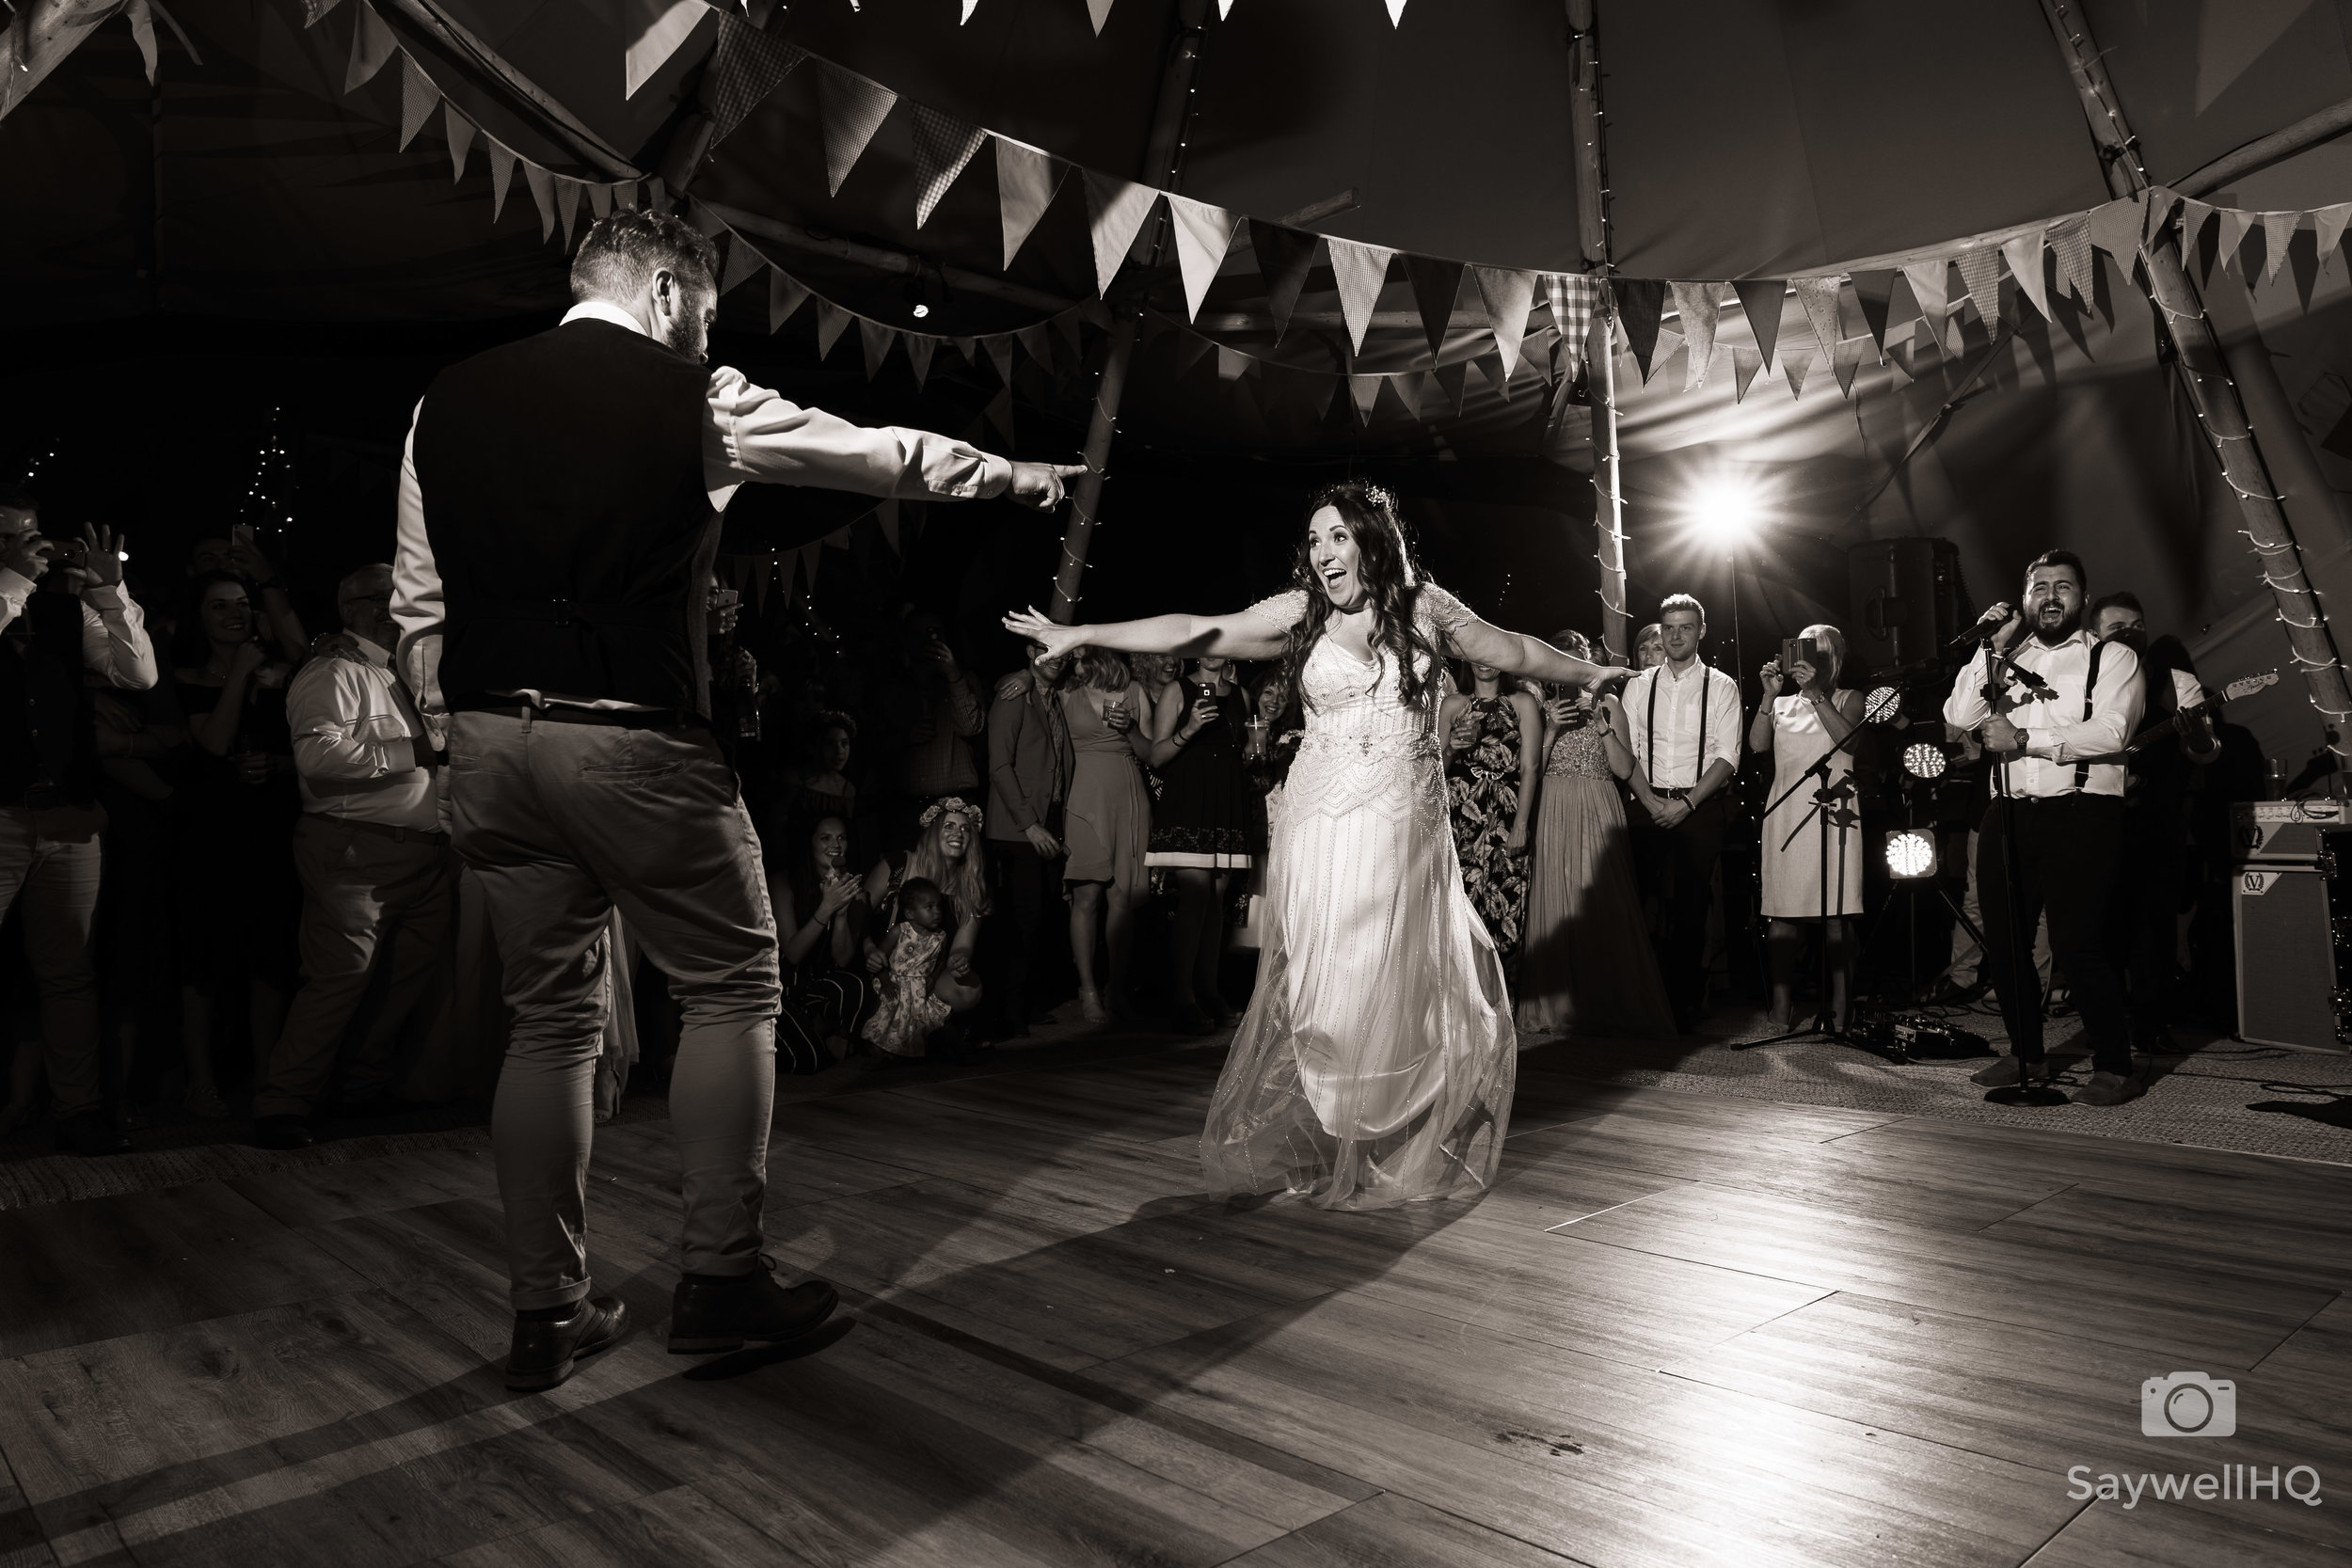 Mapperley Farm wedding photography + bride + groom first dance in tipi